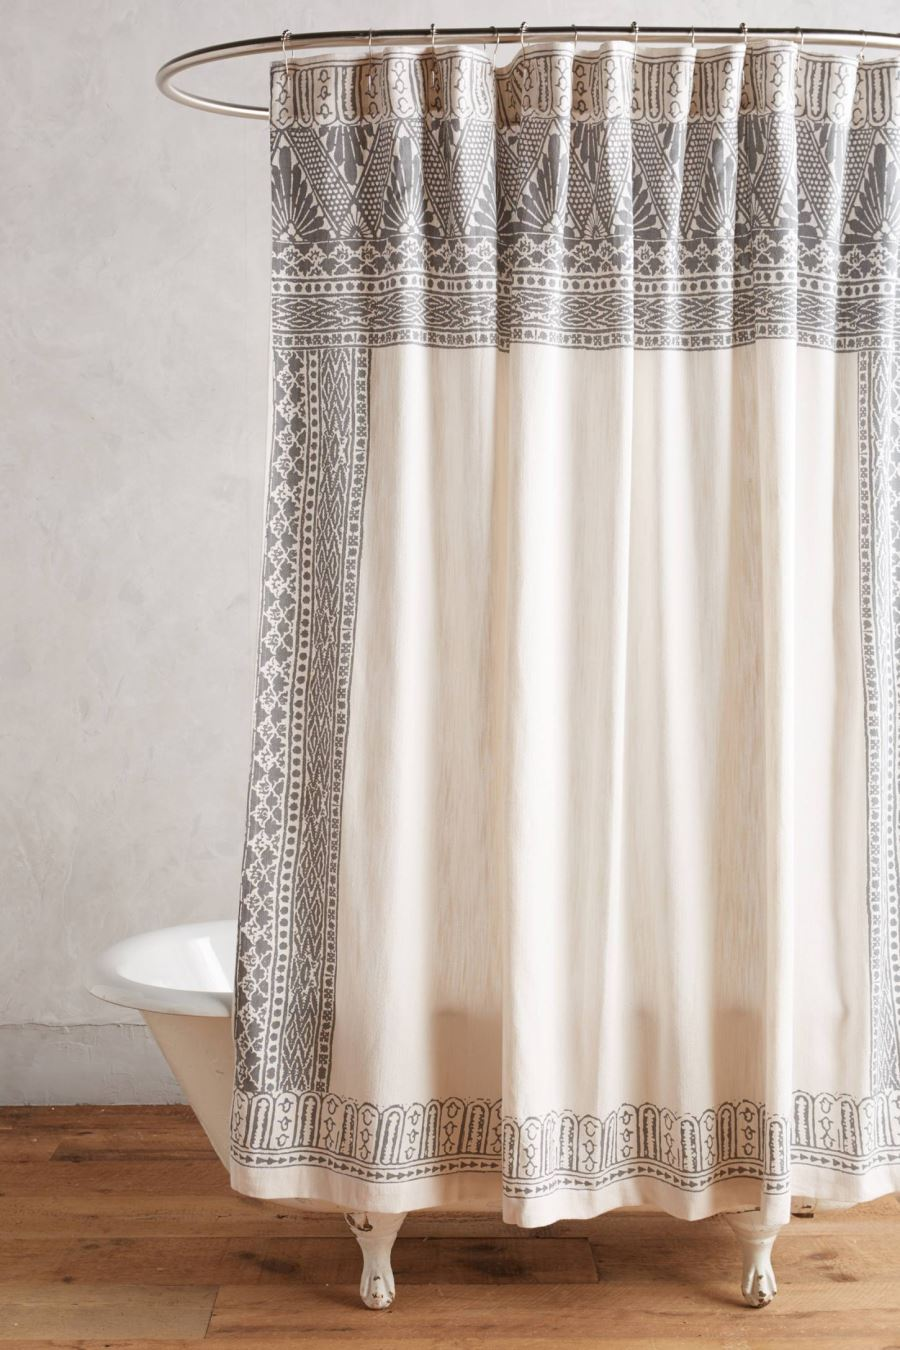 Anthropologie shower curtain with Art Noveau flair